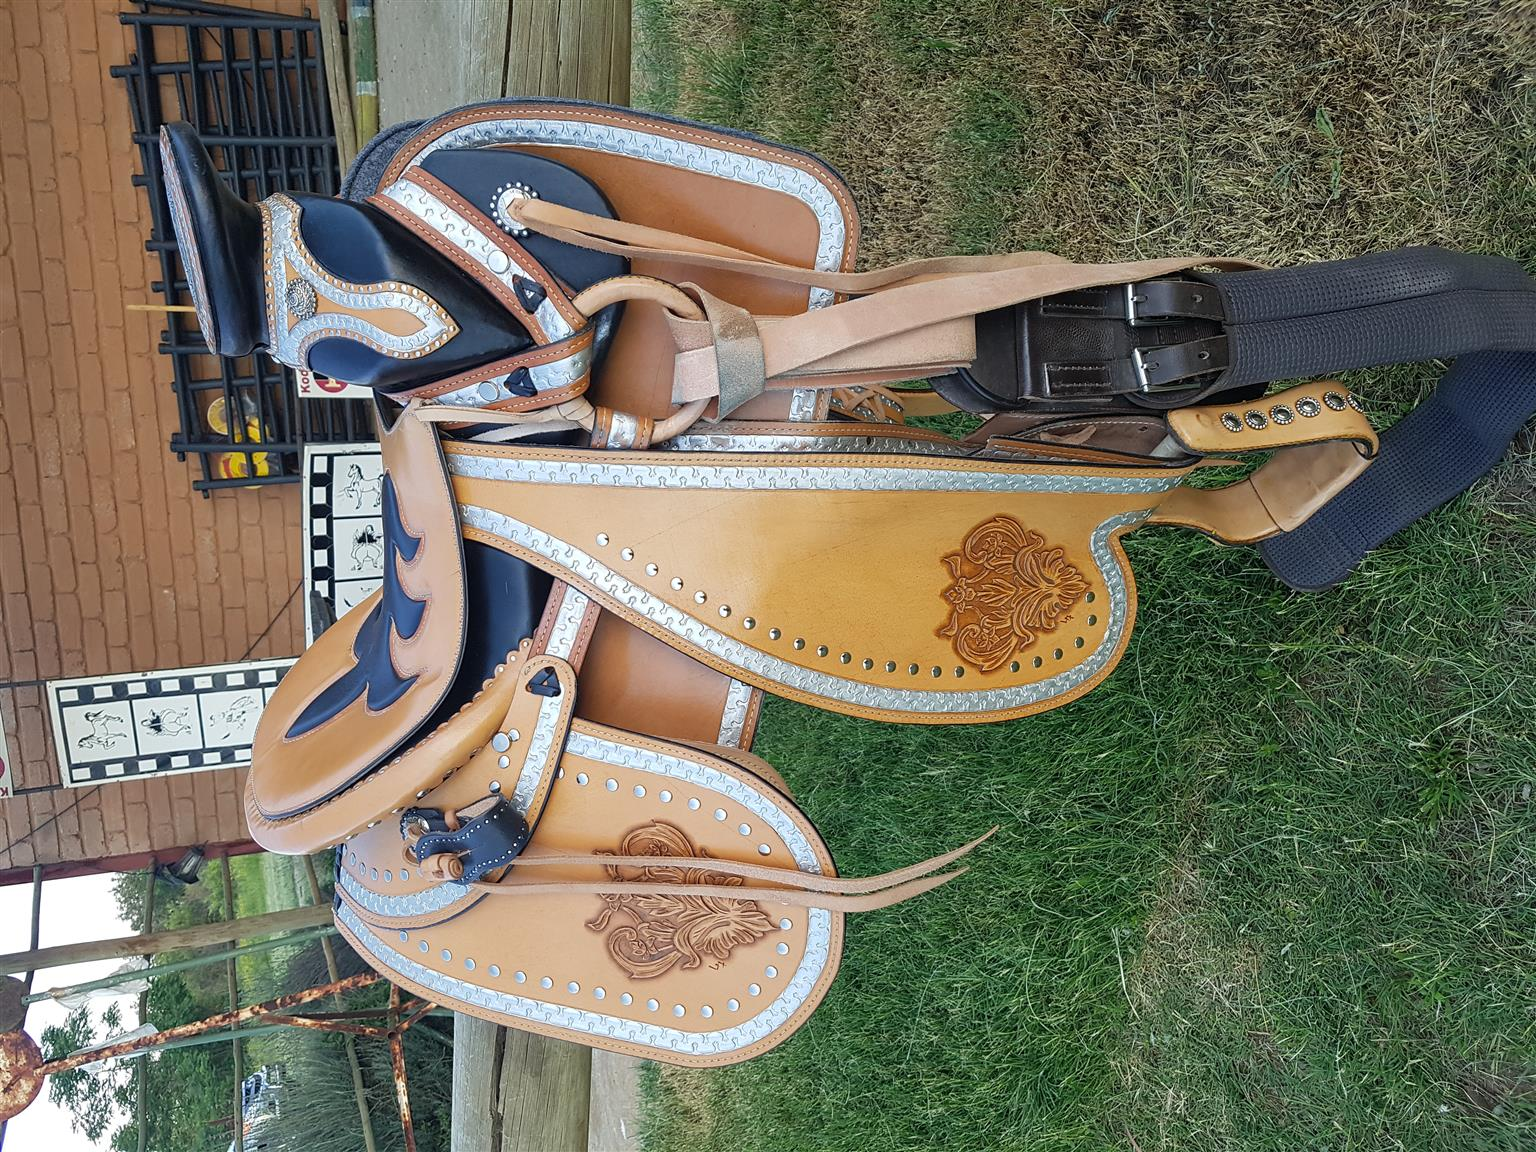 brand new Mexican Charrio saddle package.